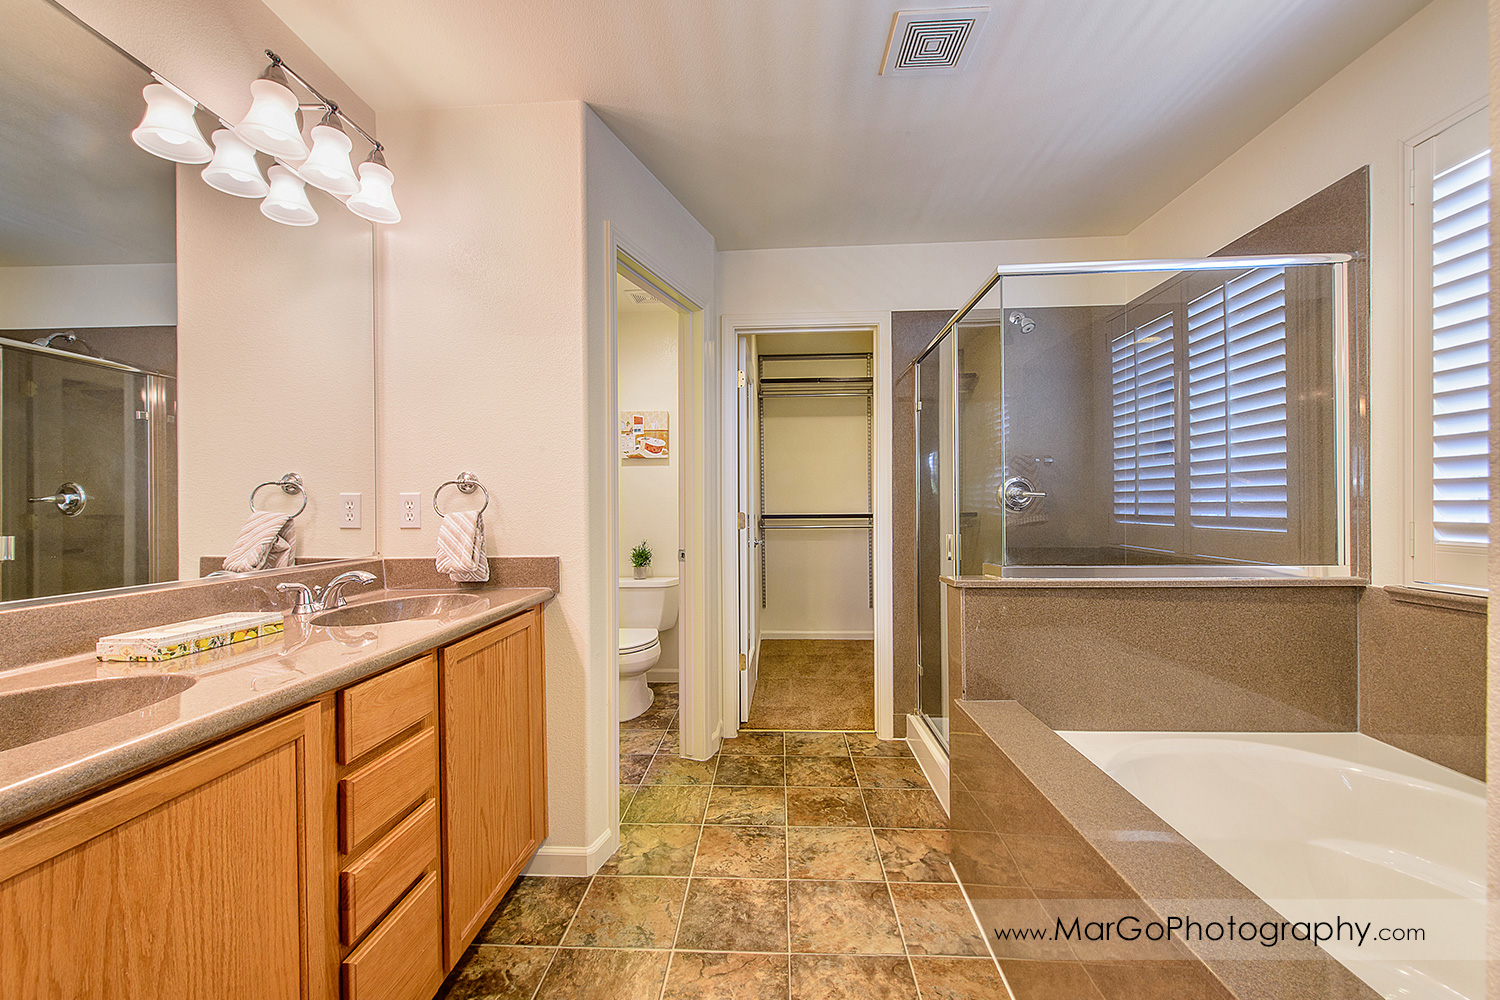 Pittsburd house upstairs master bathroom - real estate photography